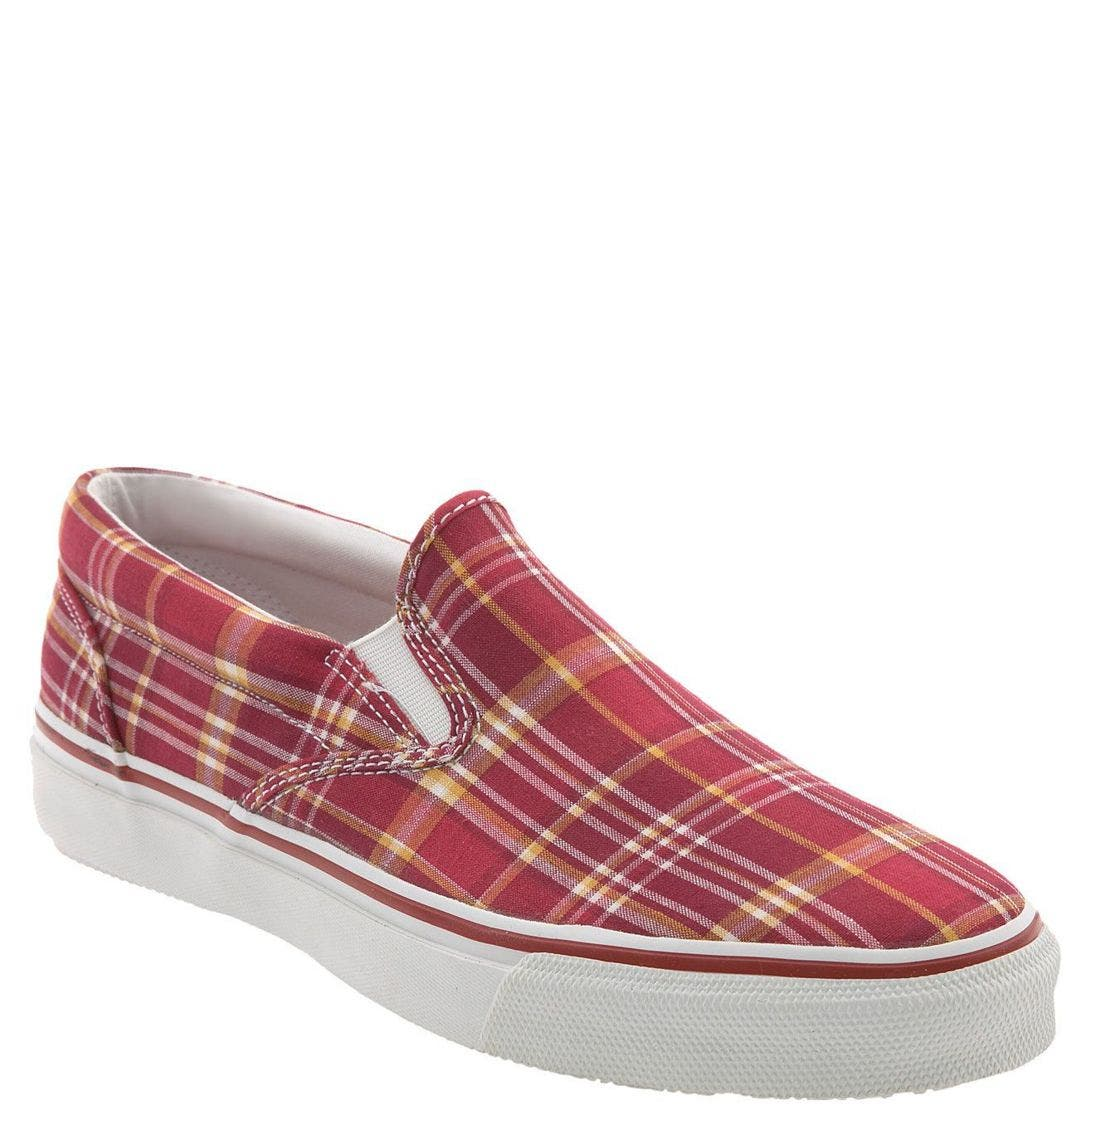 Top-Sider<sup>®</sup> 'Striper' Slip-On,                             Main thumbnail 1, color,                             GREY CANVAS